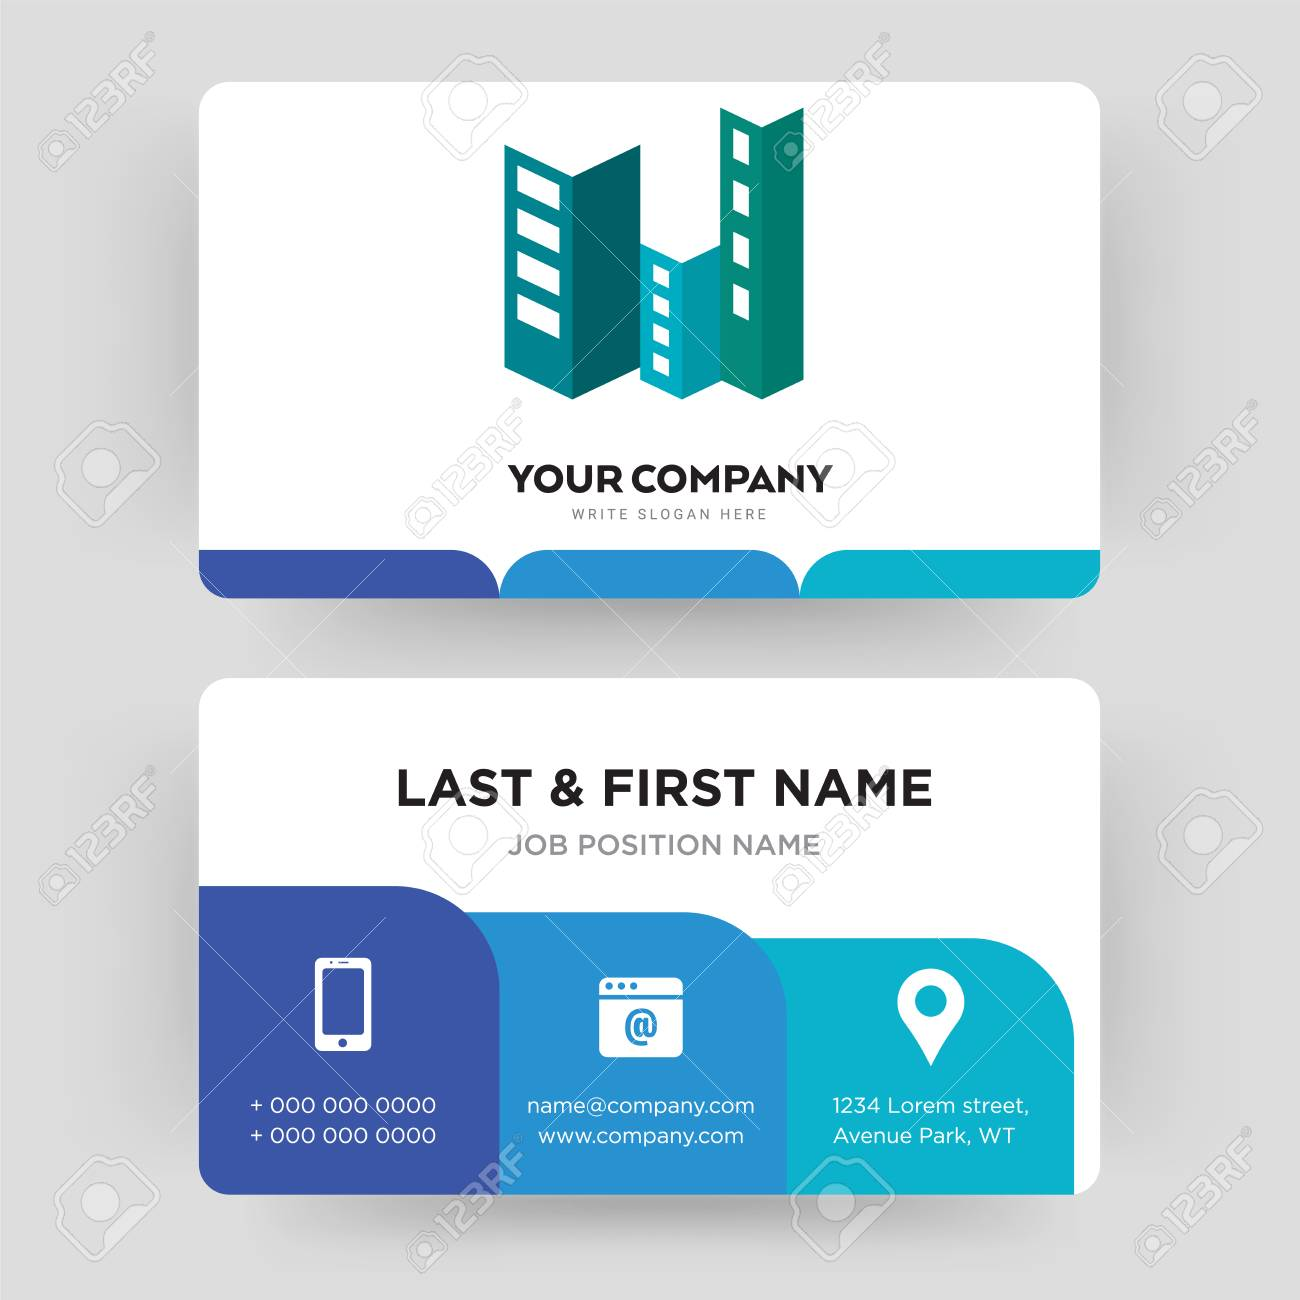 Construction Business Card Design Template Visiting For Your